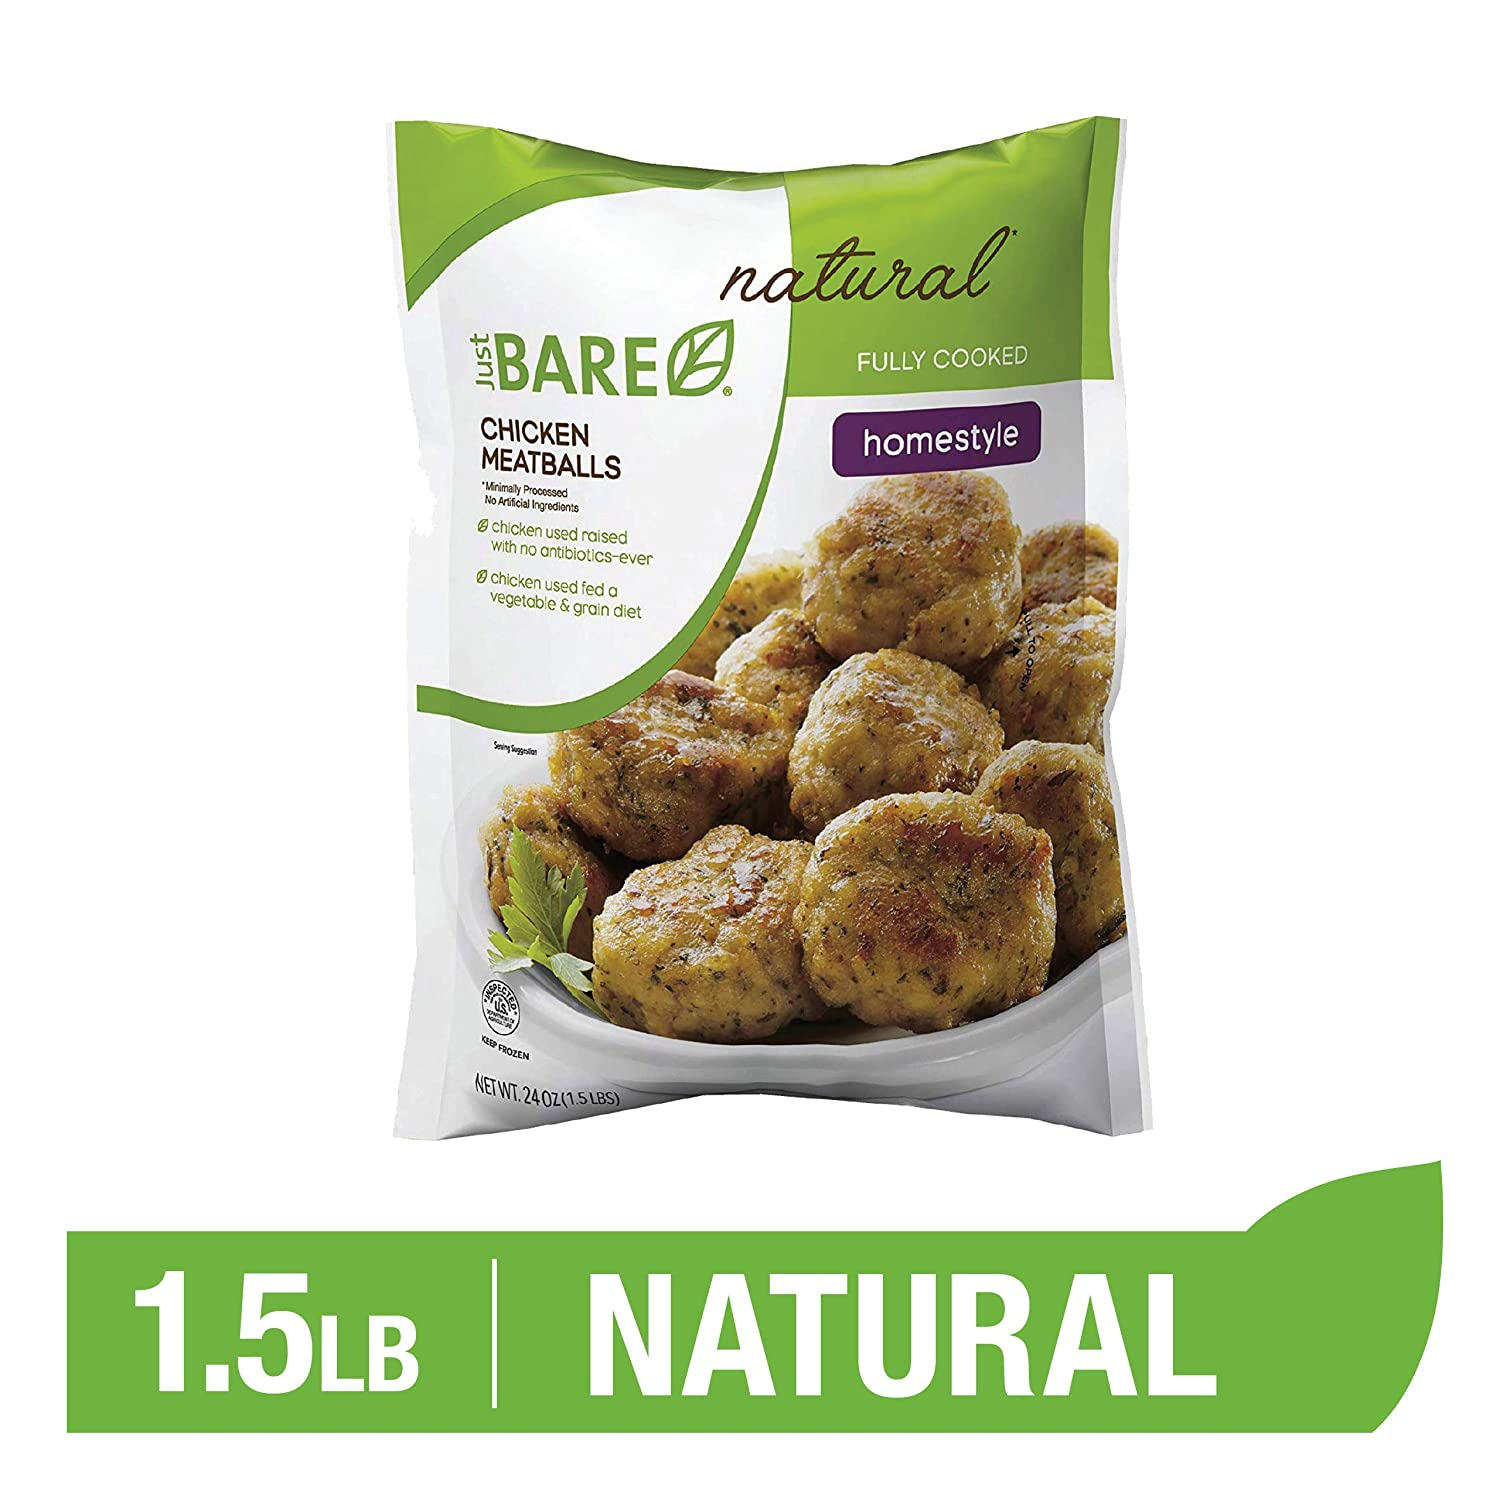 Just BARE Natural Chicken Meatballs | Fully Cooked | Homestyle | Frozen | 1.50 LB